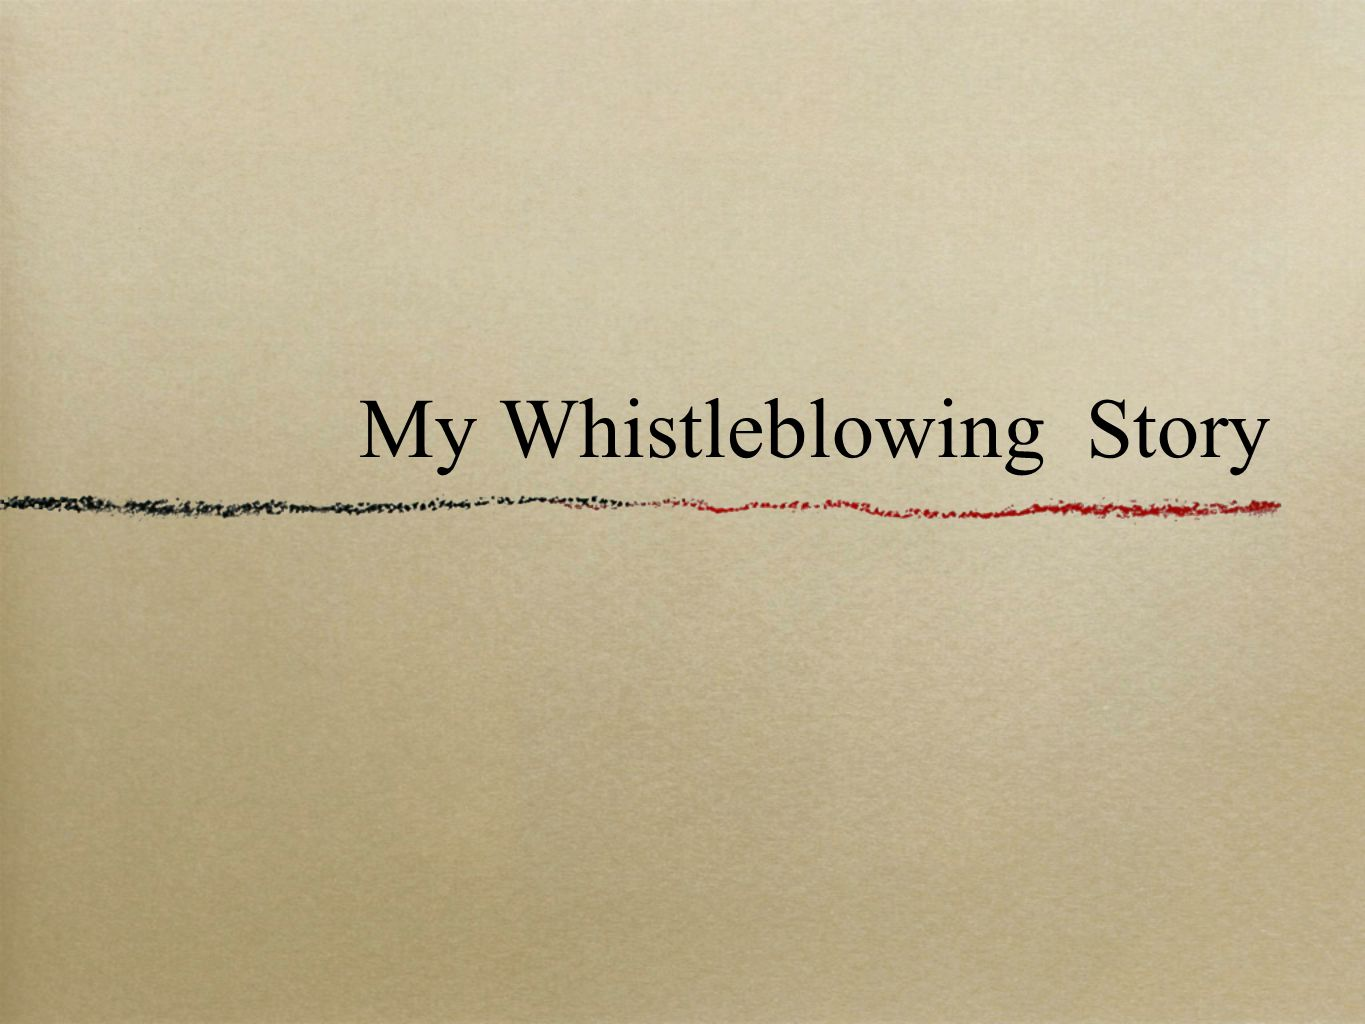 My Whistleblowing Story